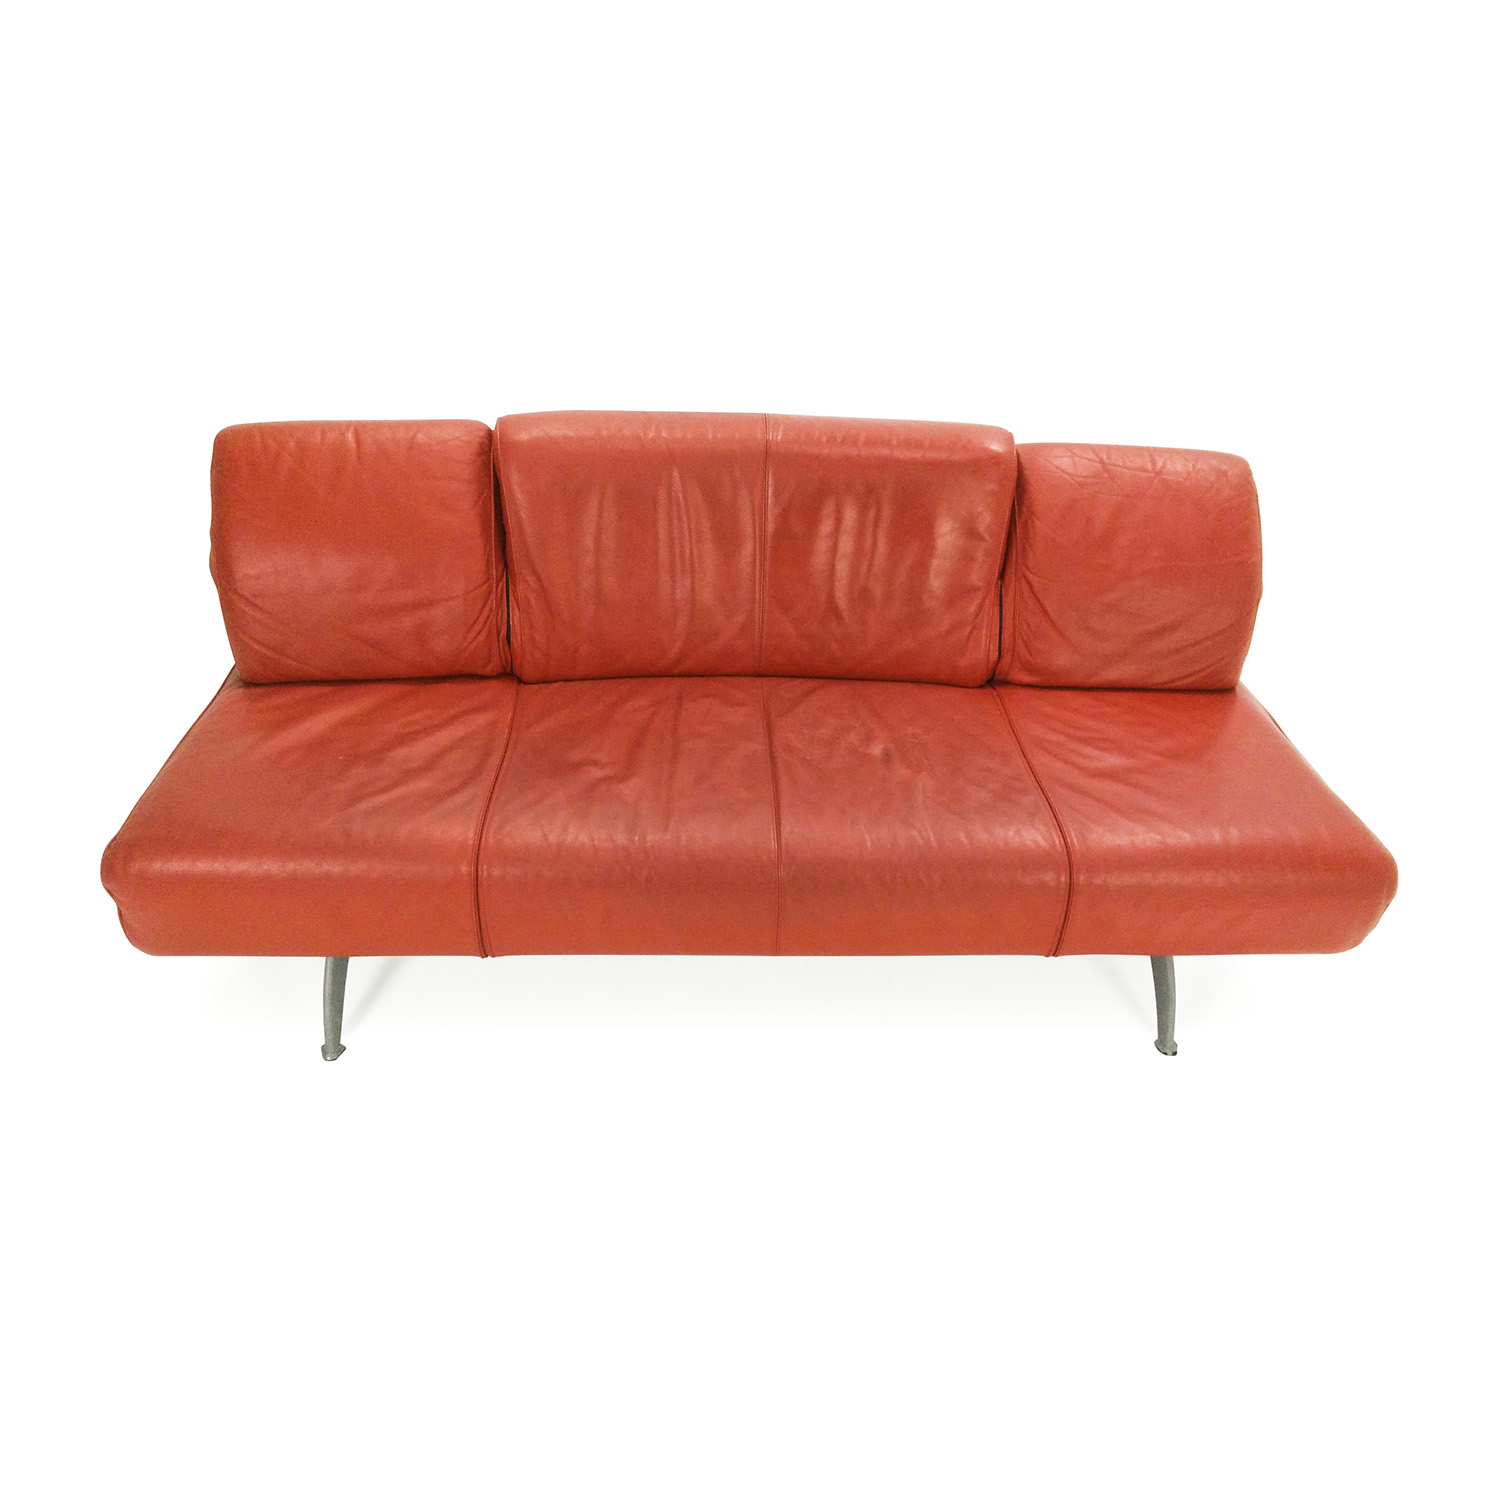 ... Team By Wellis Team By Wellis Red Leather Sofa Dimensions ...